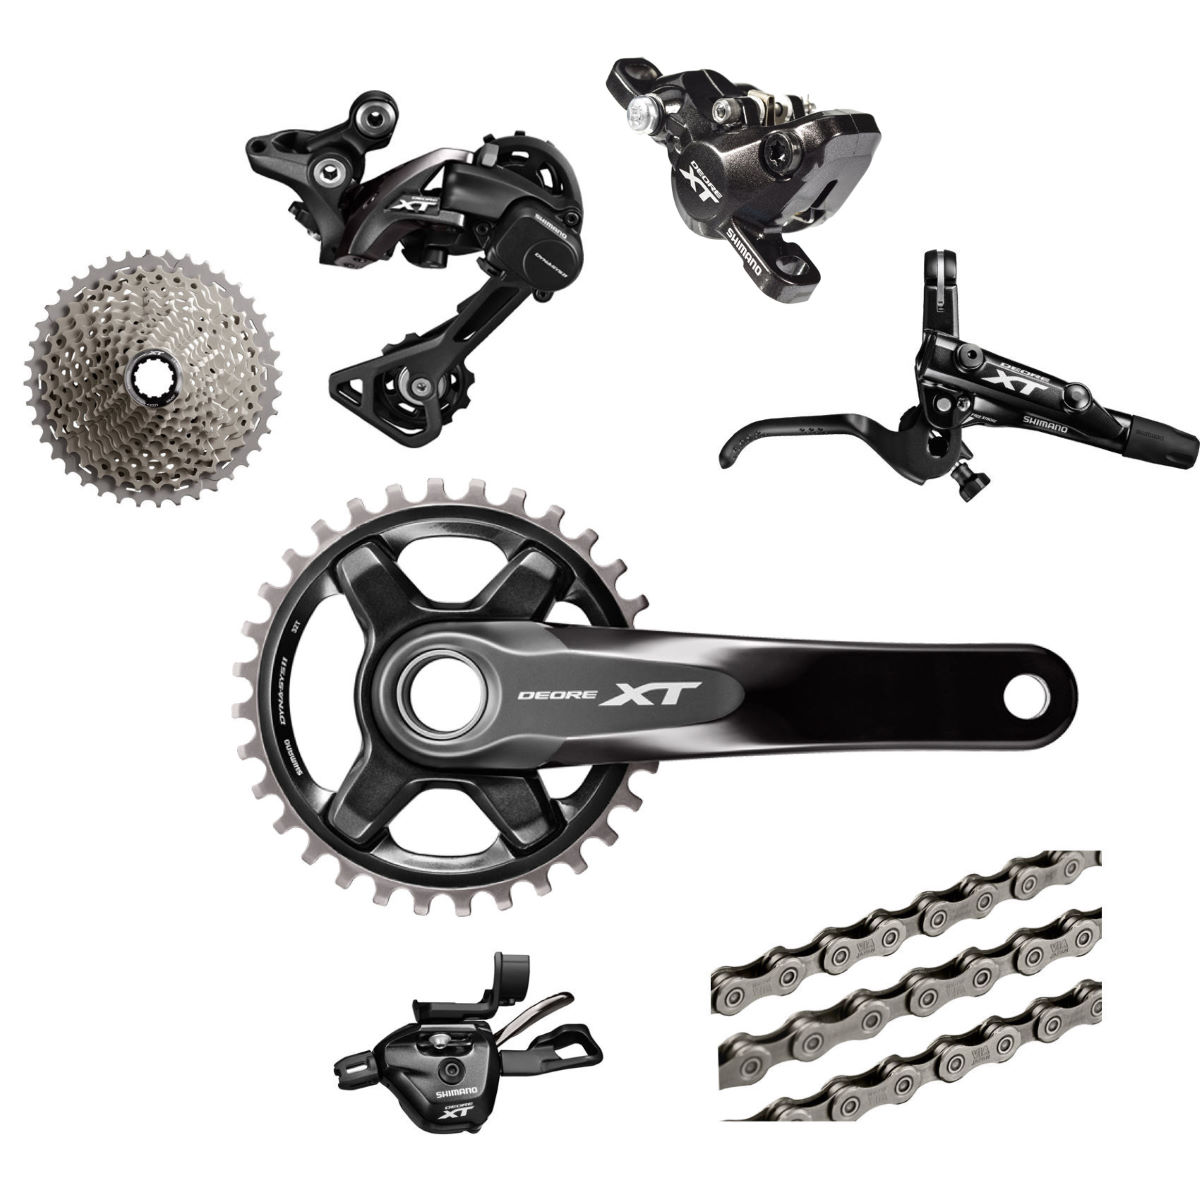 Shimano Deore XT M8000 11 Speed Groupset (1x11) Groupsets ...